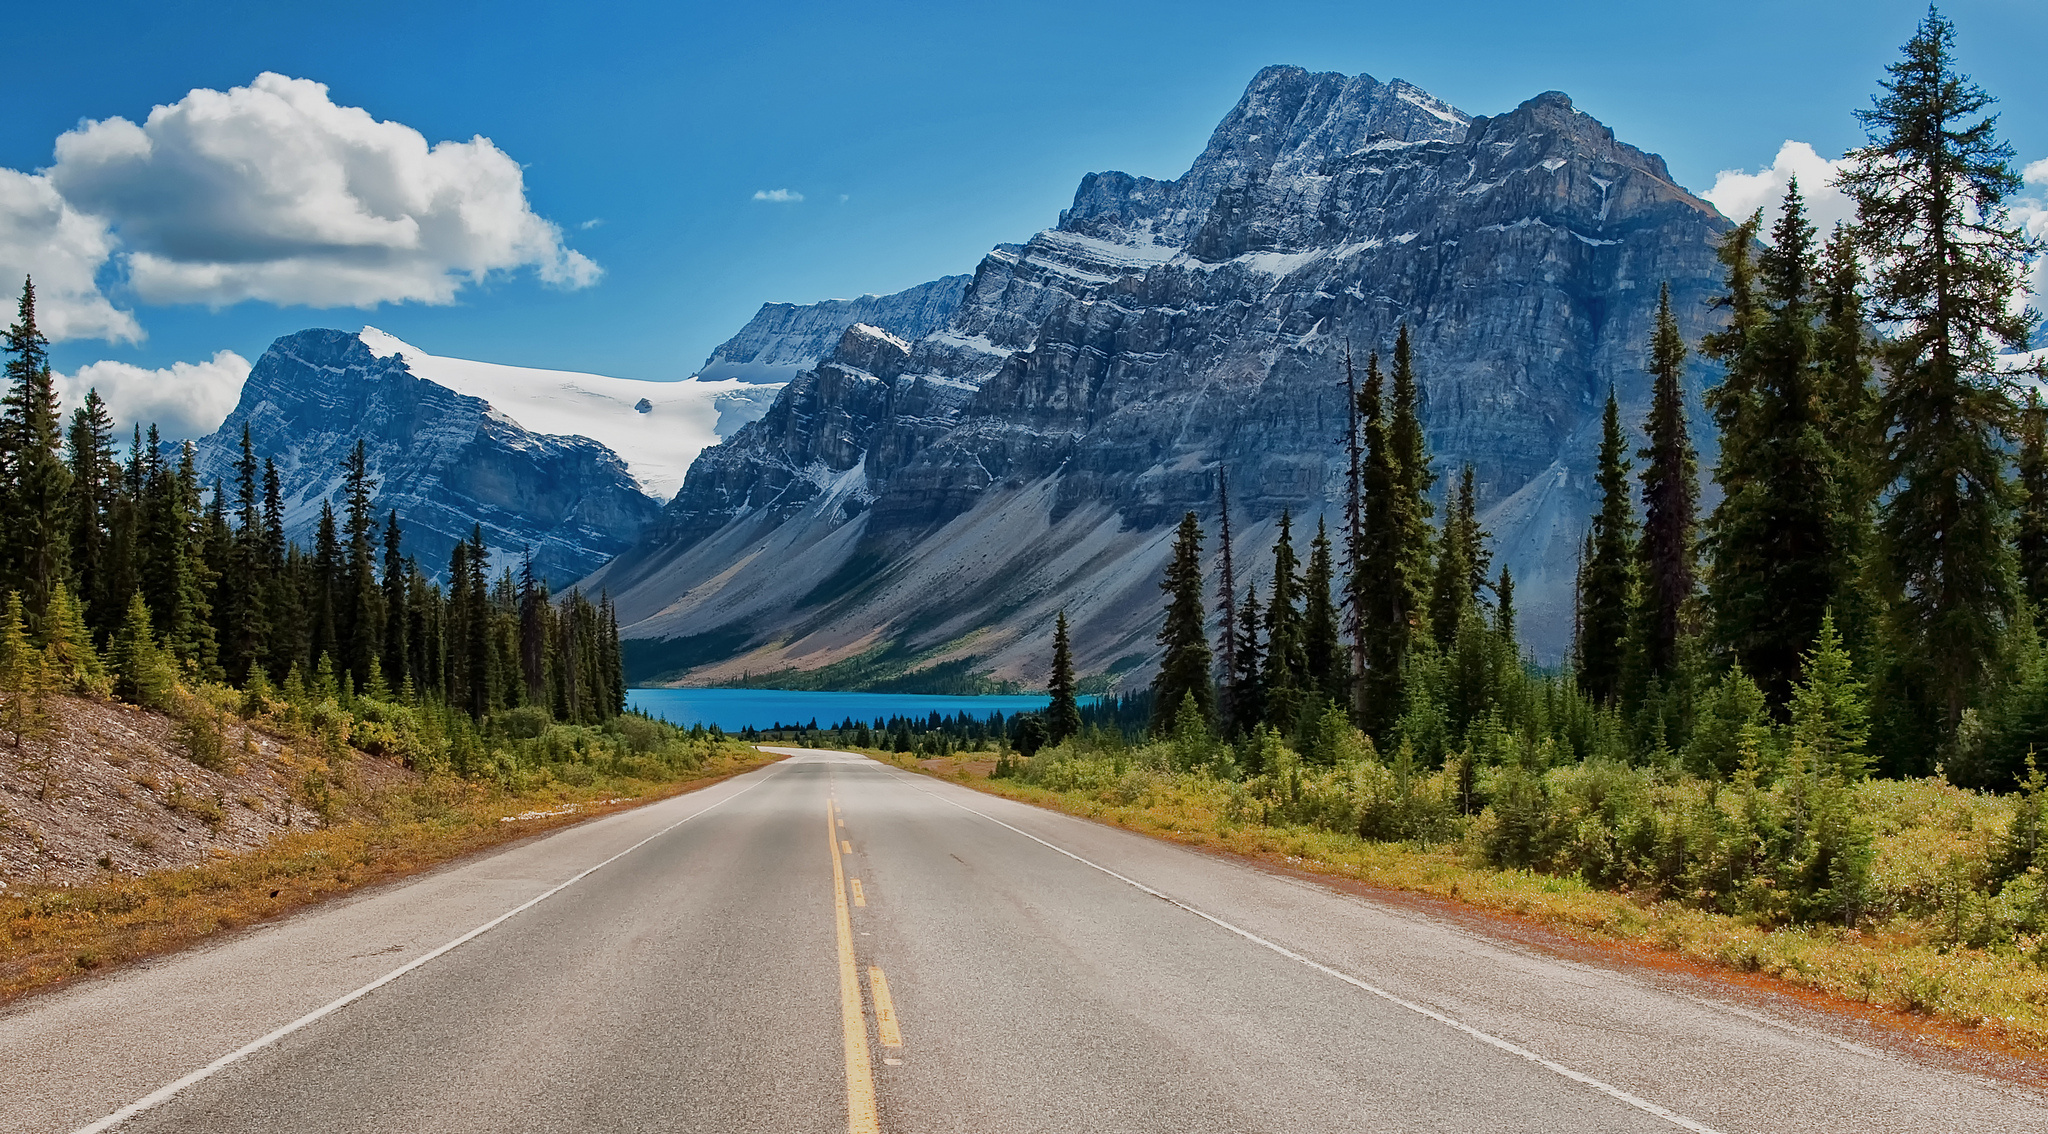 Canada Canadian Rockies road trees lake mountains wallpaper background 2048x1134